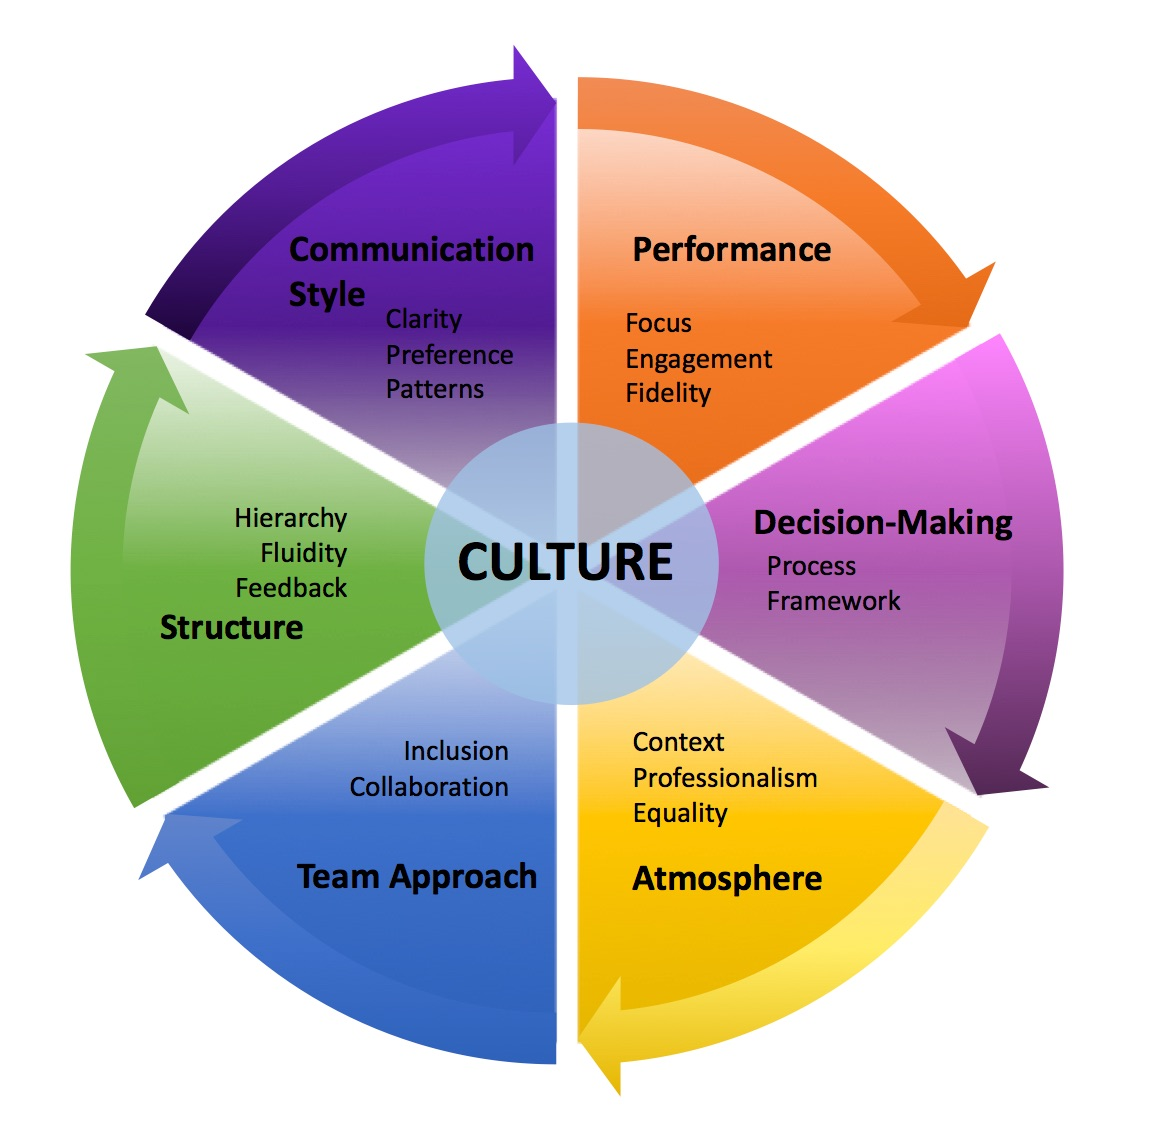 6 Elements To Assess Your Company's Culture